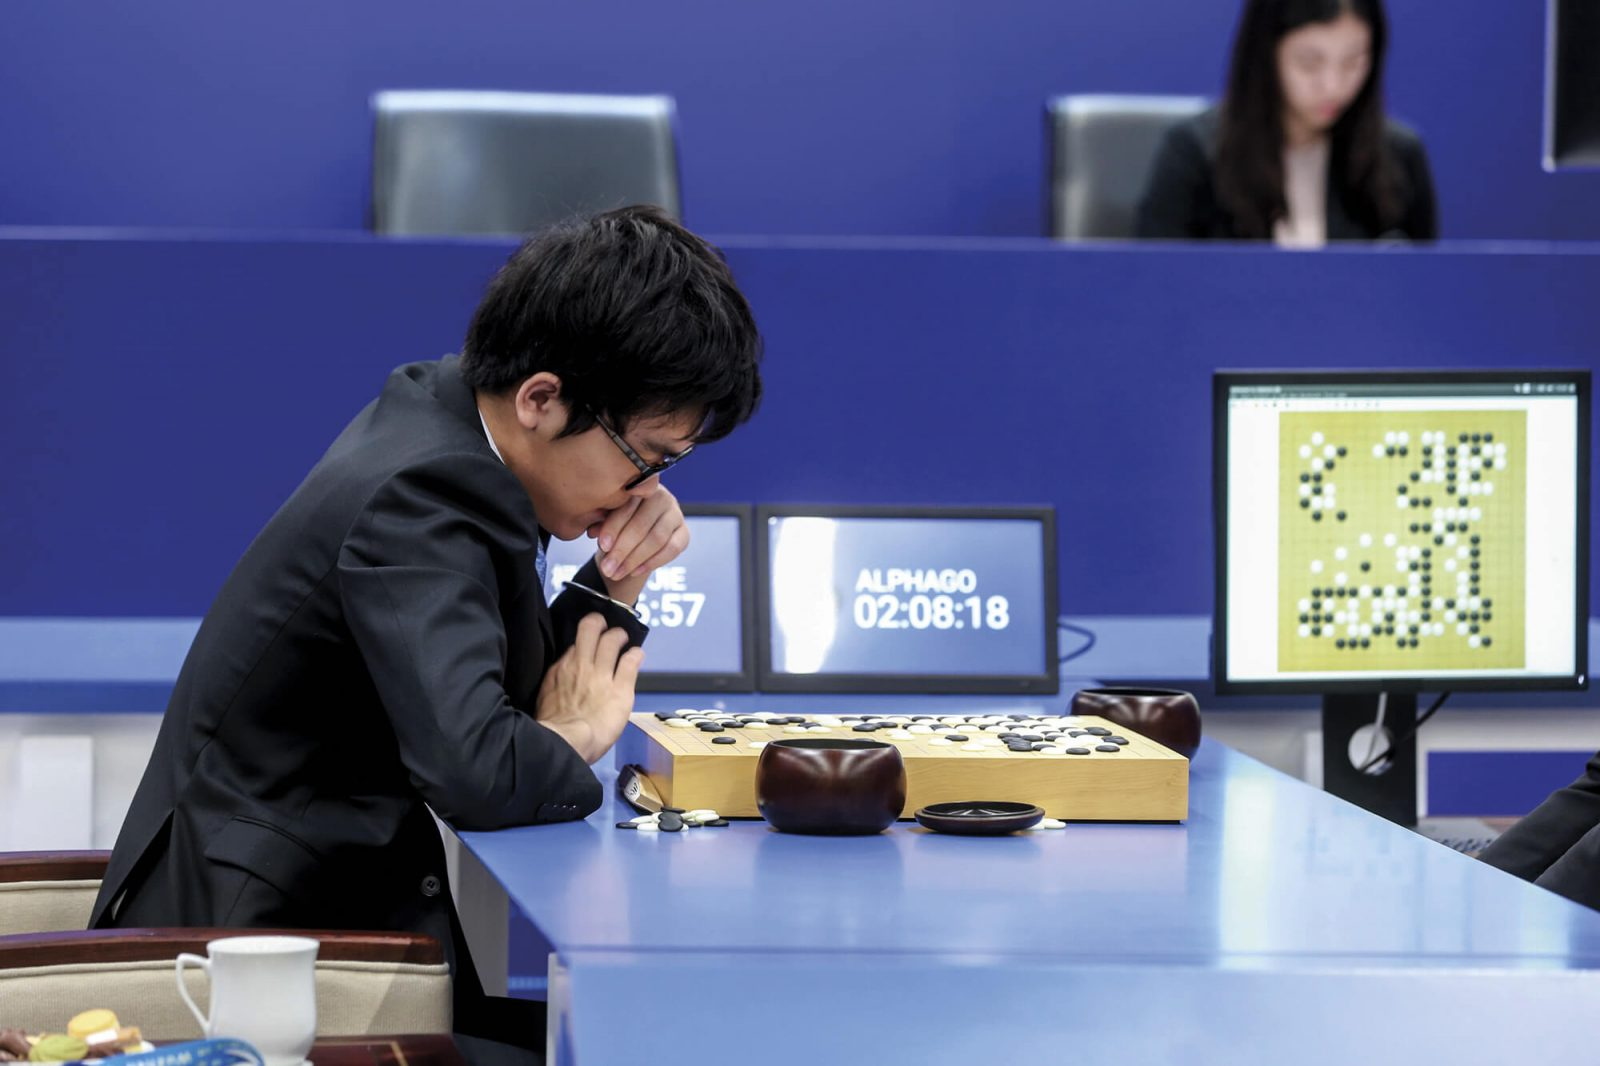 Google's AlphaGo software beat South Korean Lee Sedol in a game of Go in 2016